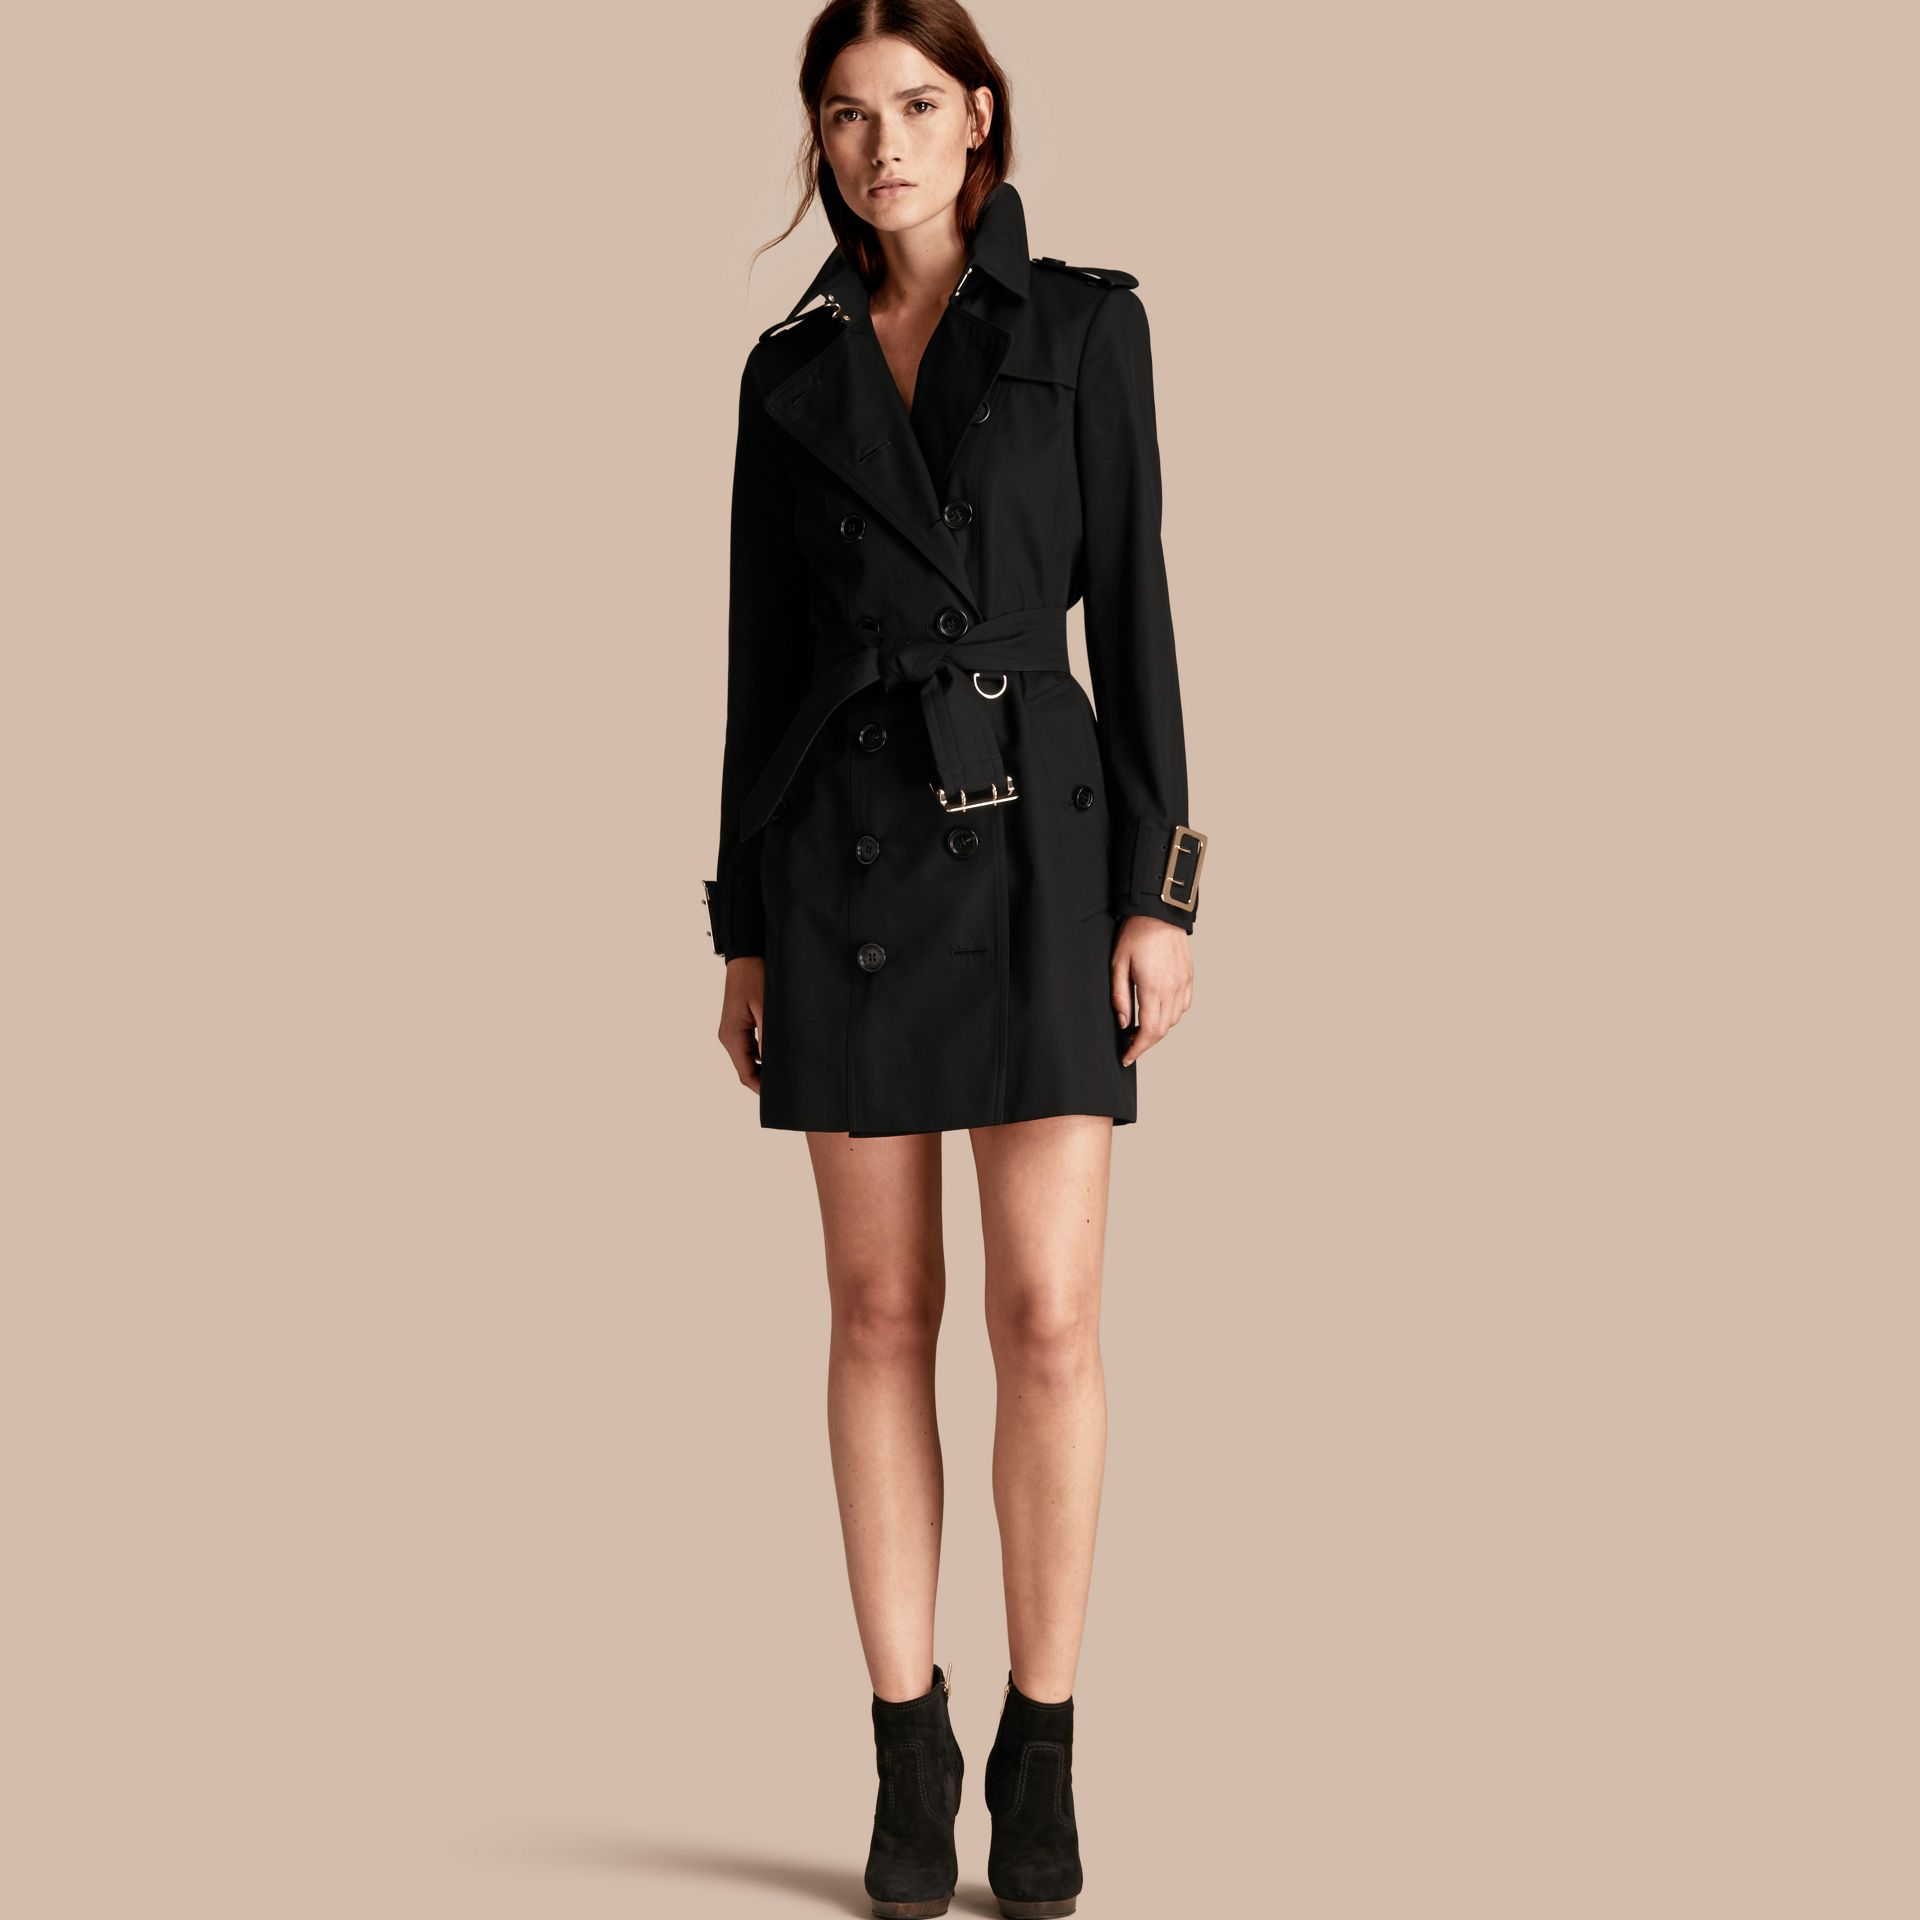 Black Cotton Gabardine Trench Coat with Oversize Buckle Detail Black - gallery image 1